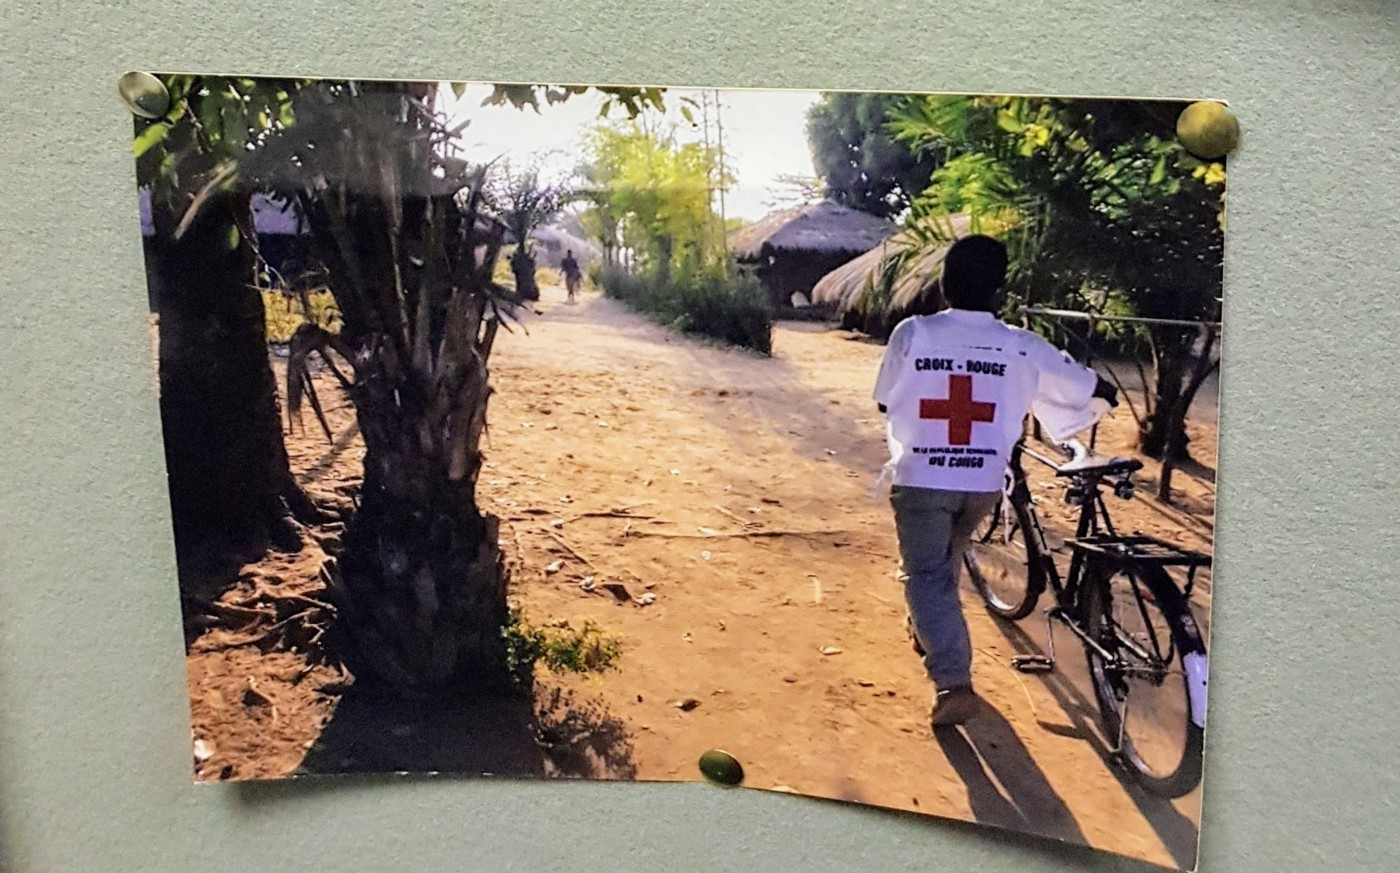 Image of a photo pinned to a noticeboard. The photo shows a man in red cross uniform arriving at a rural village.